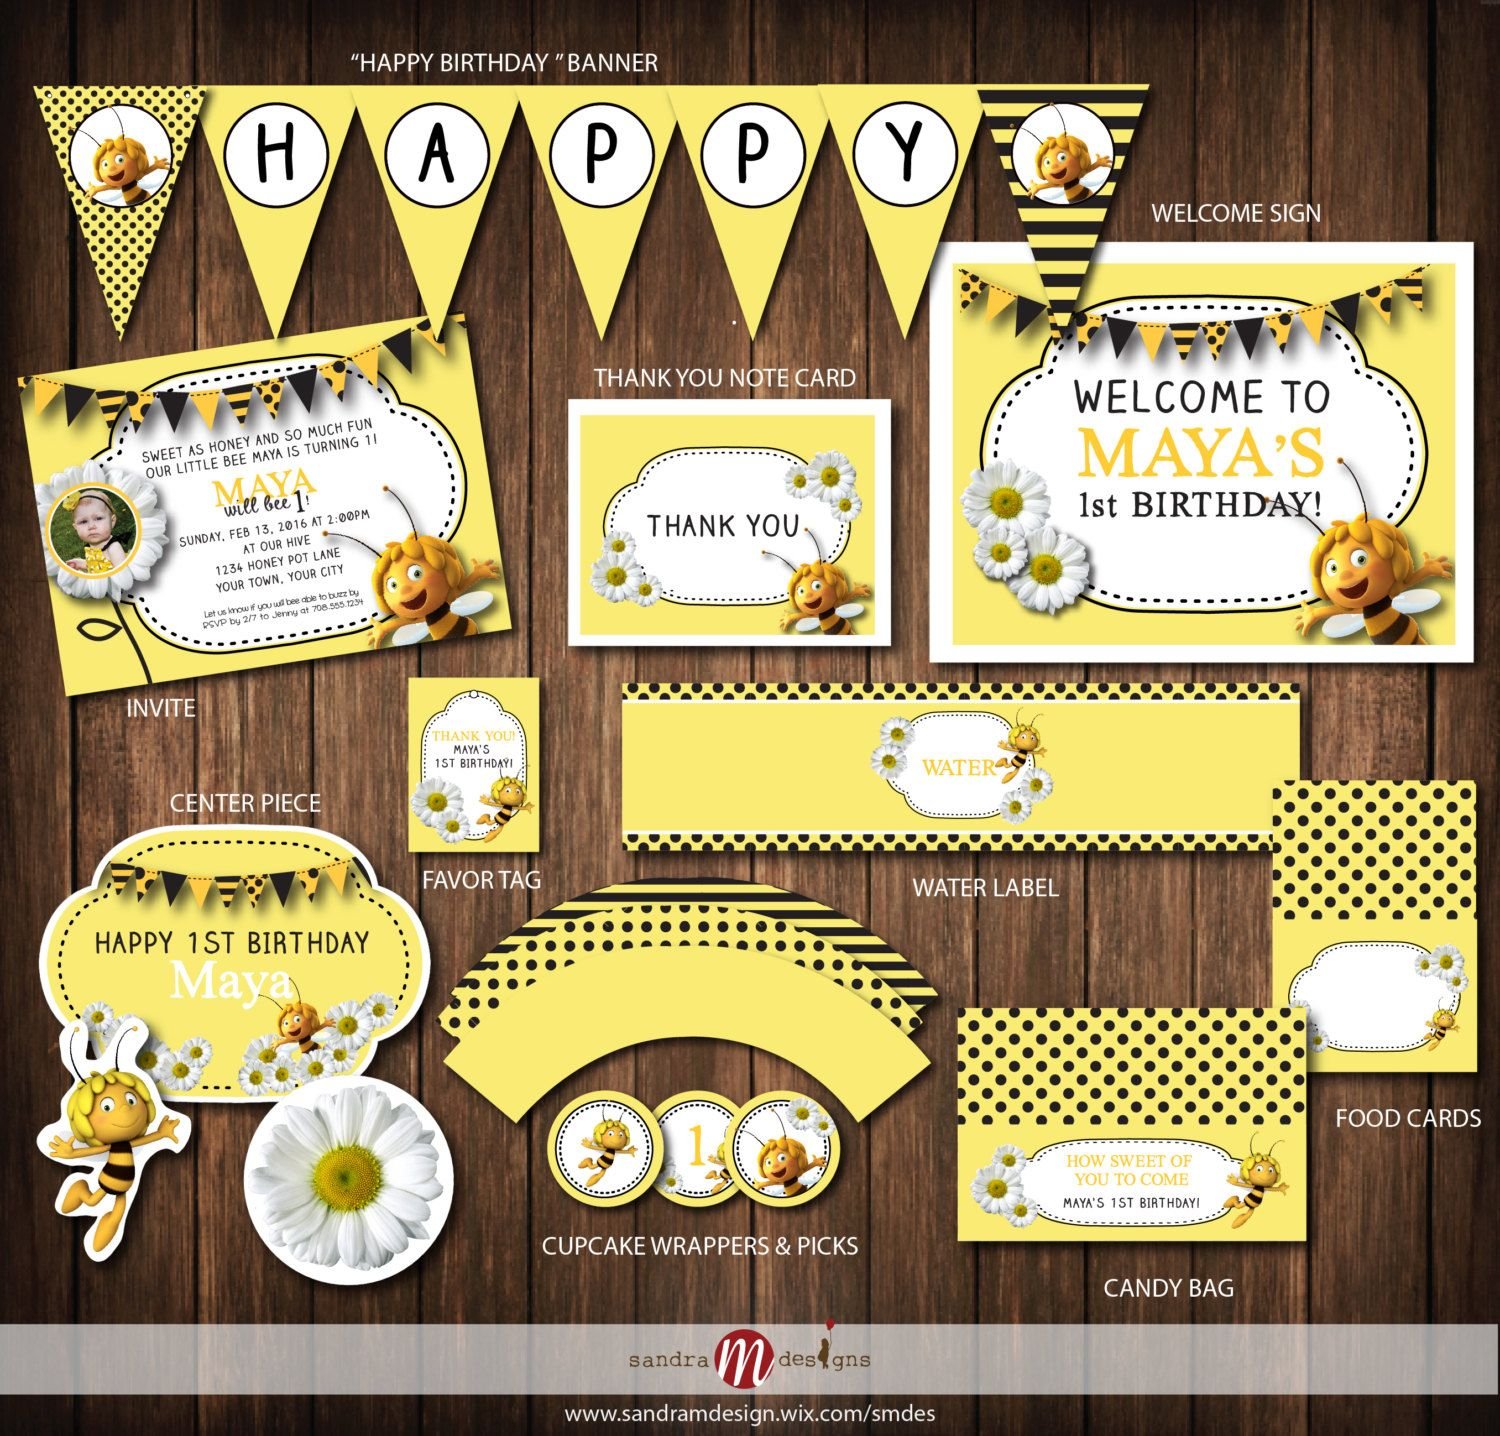 Personalized Maya the Bee Birthday Banner Party Backdrop